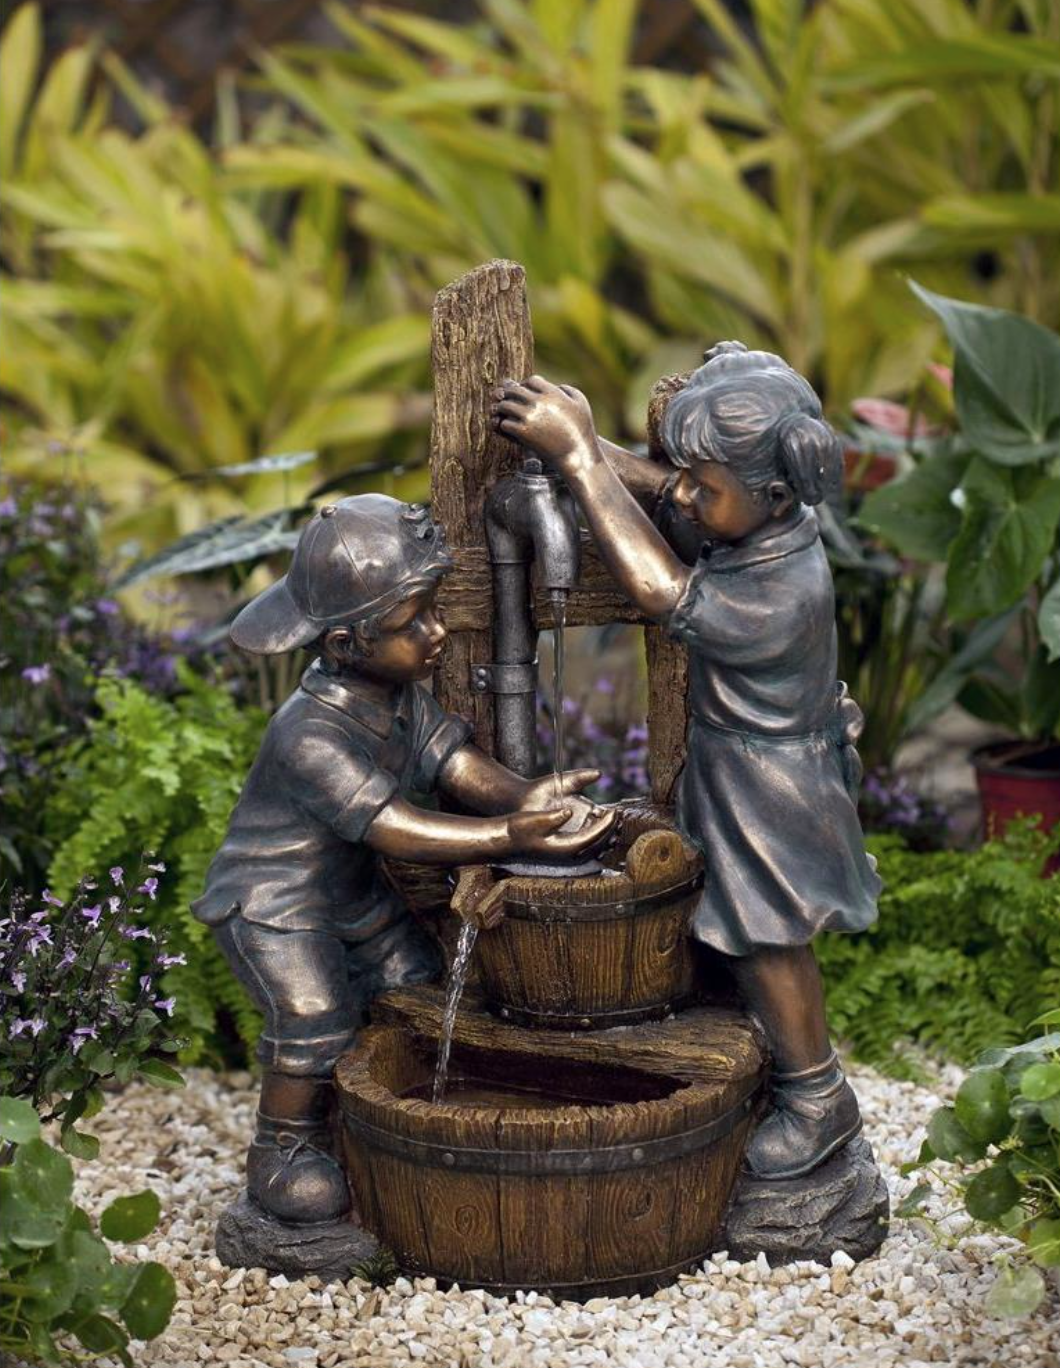 Bring This Cute Pump And Kids Water Fountain To Your Garden Or Yard Water Pours From Sprout Into Wood Basin And One Boy Water Fountain Kids Playing Cute Pumps